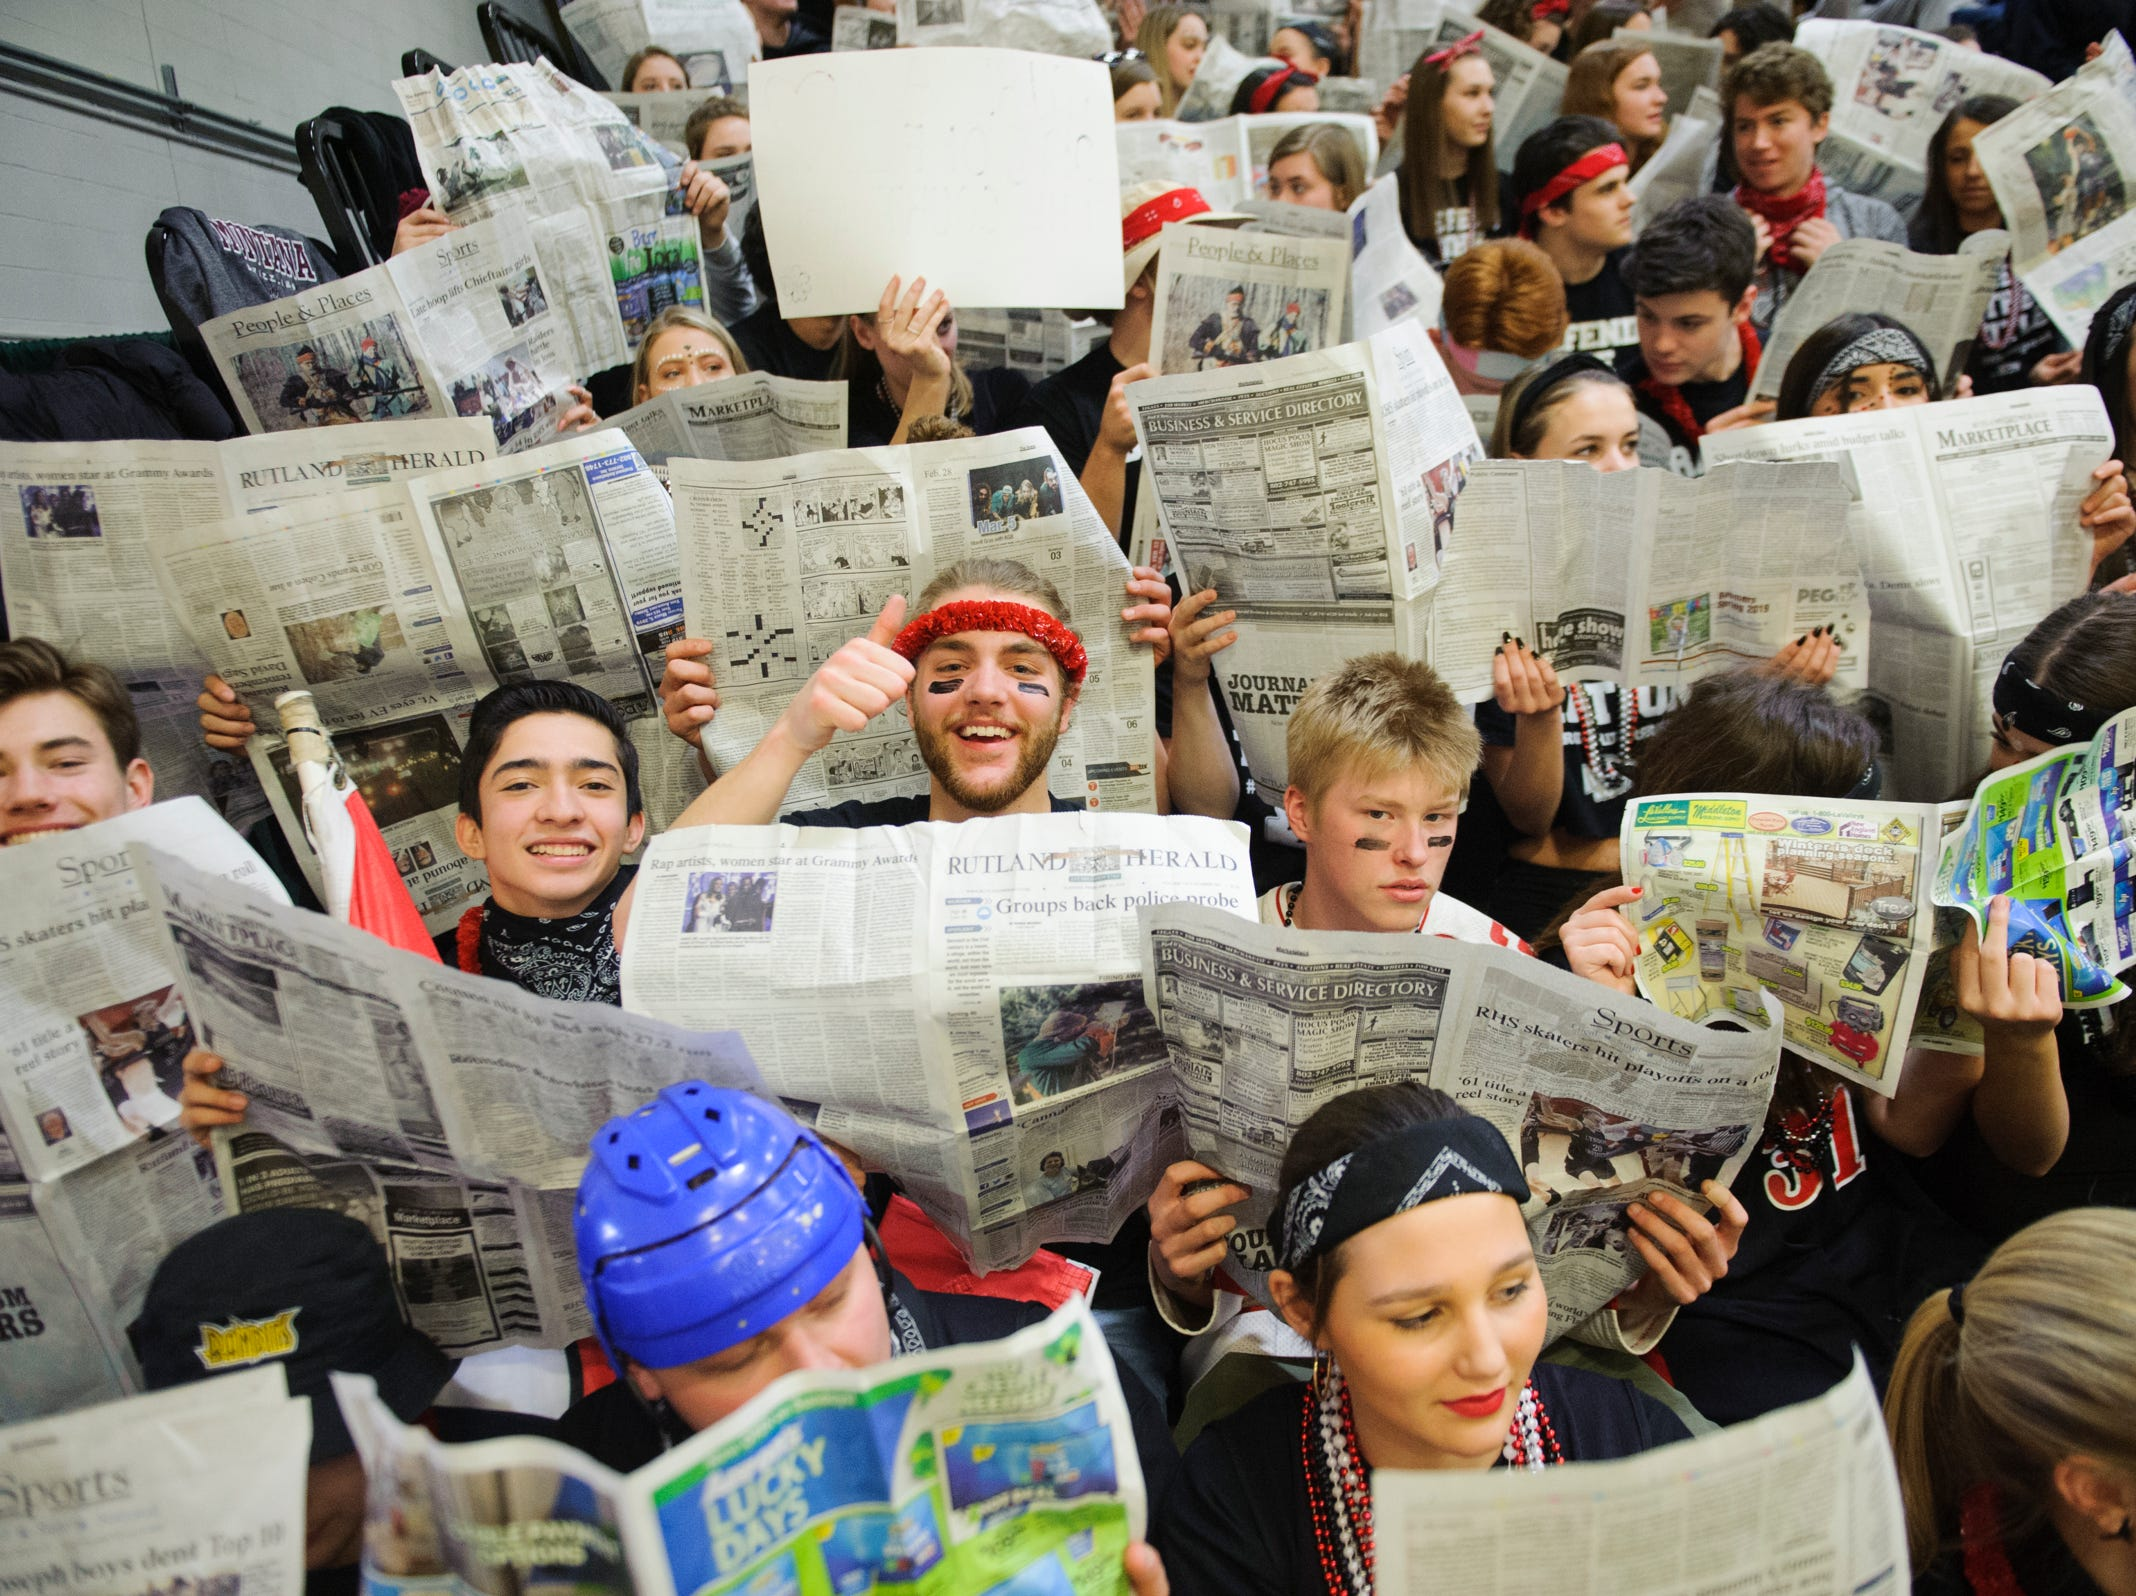 Rutland fans hold up newspapers as St. Johnsbury is introduced during the DI boys basketball championship game between the St. Johnsbury Hilltoppers and the Rutland Raiders at Patrick Gym on Sunday afternoon March 17, 2019 in Burlington, Vermont.